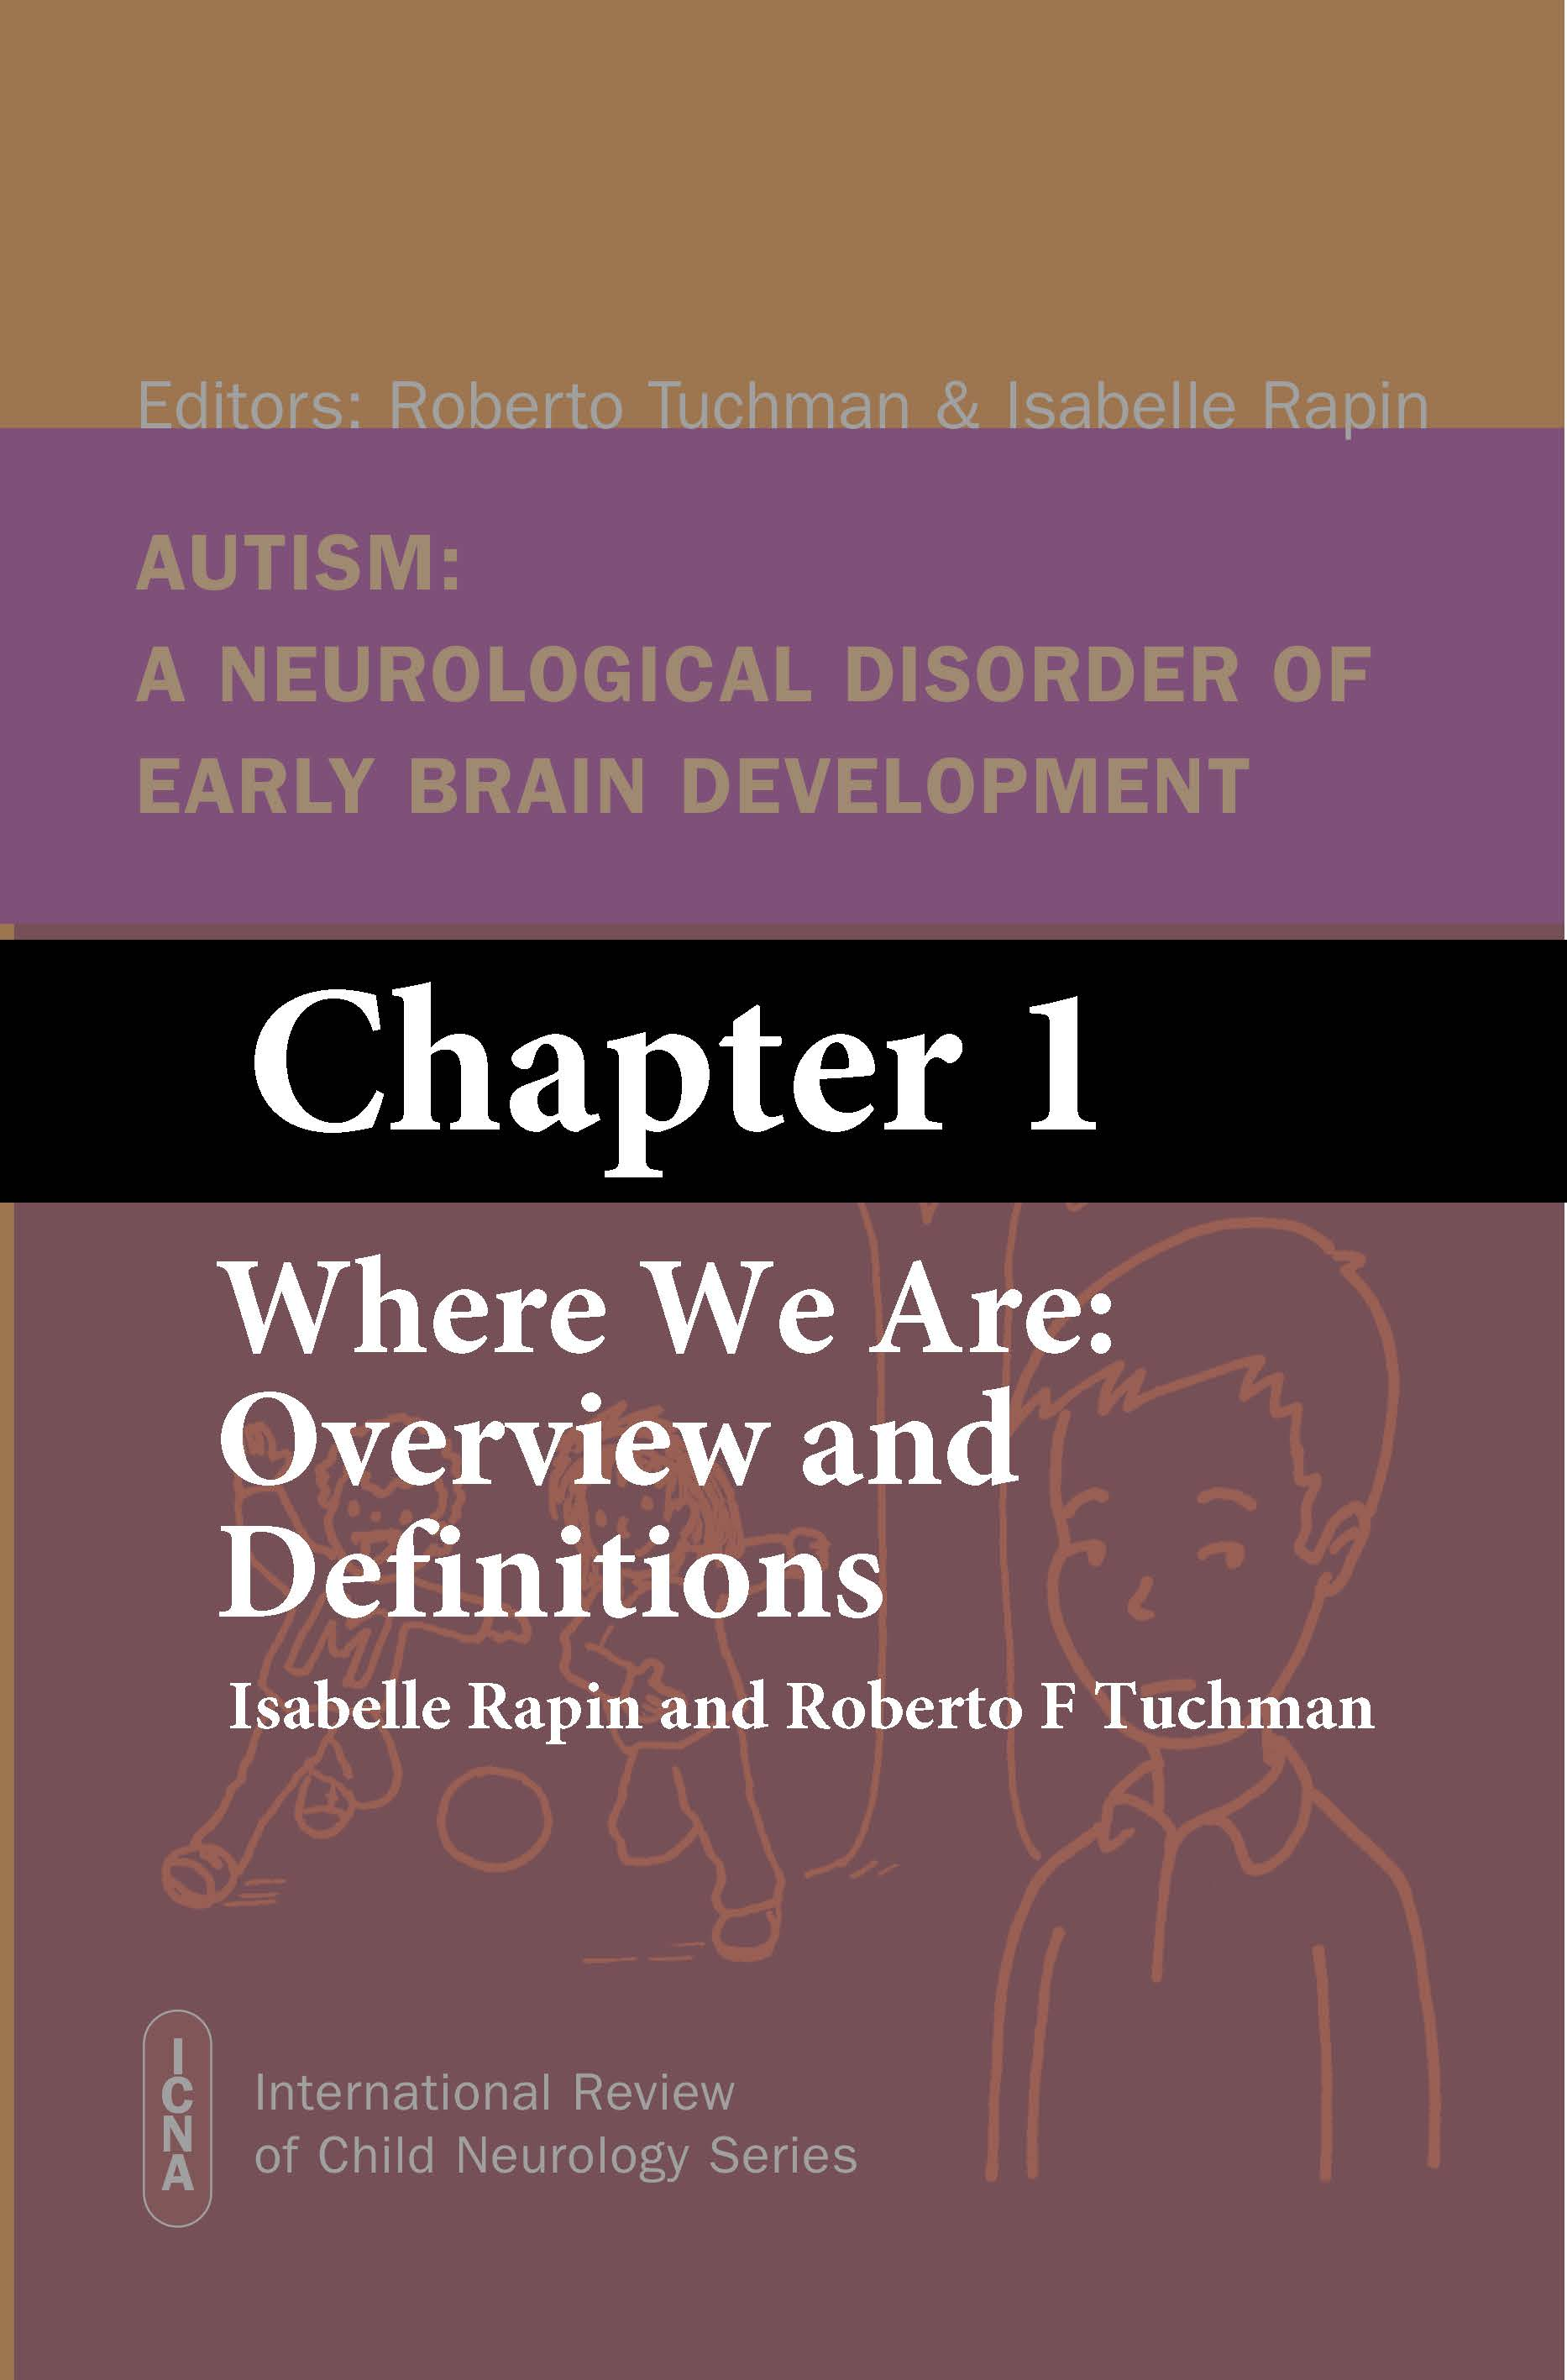 Chapter 1 AUTISM book ICNA7 Tuchman